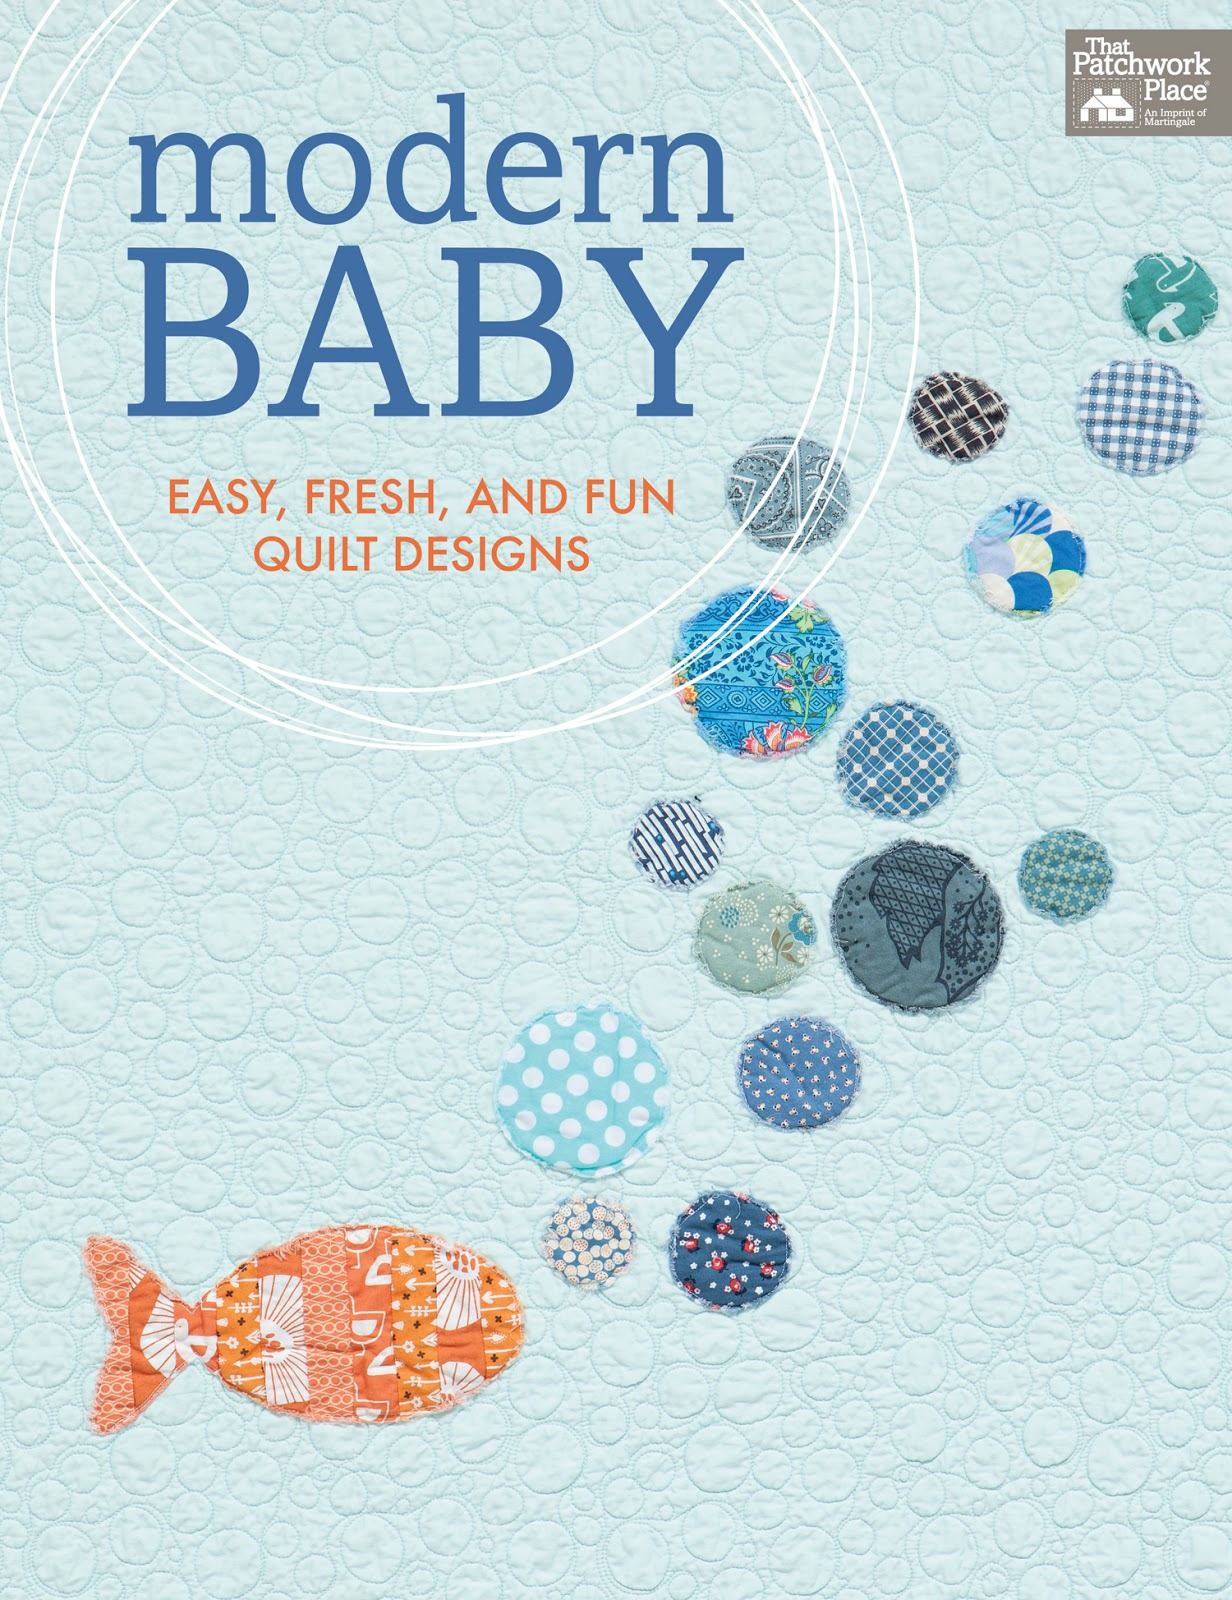 Baby Quilt Patterns Contemporary : Old Red Barn Co.: Modern Baby -- Book Tour & Giveaway